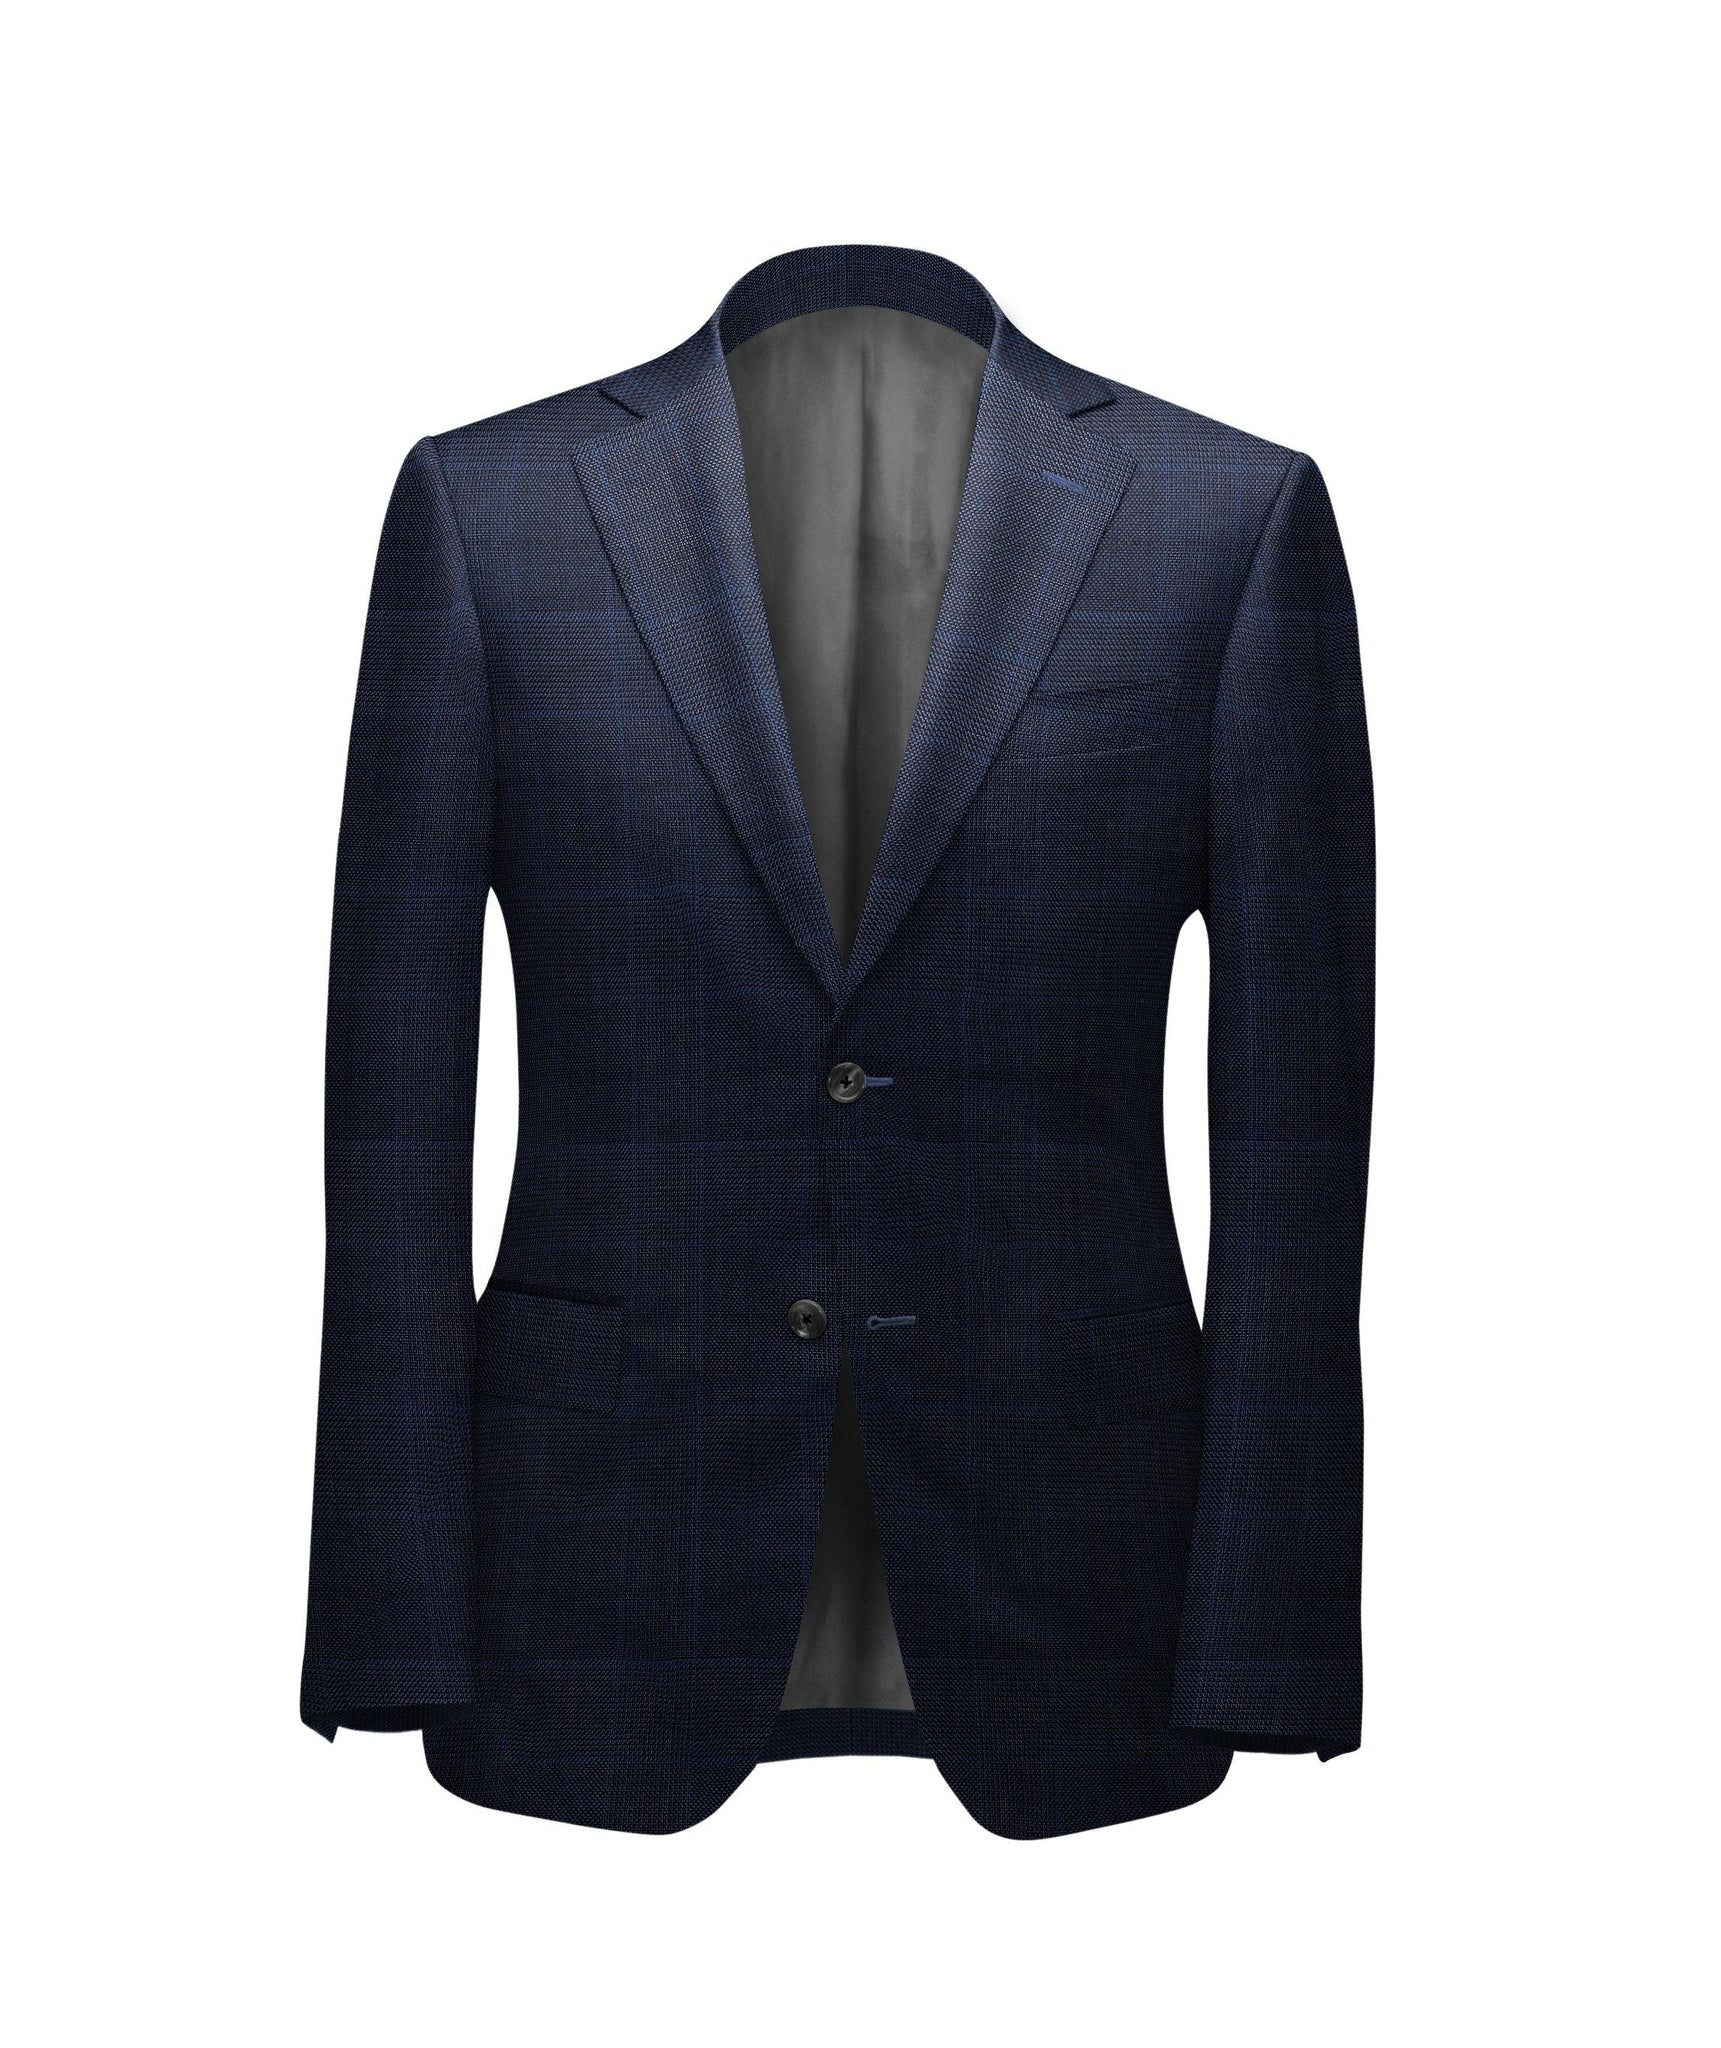 The Classic 2 Piece Suit